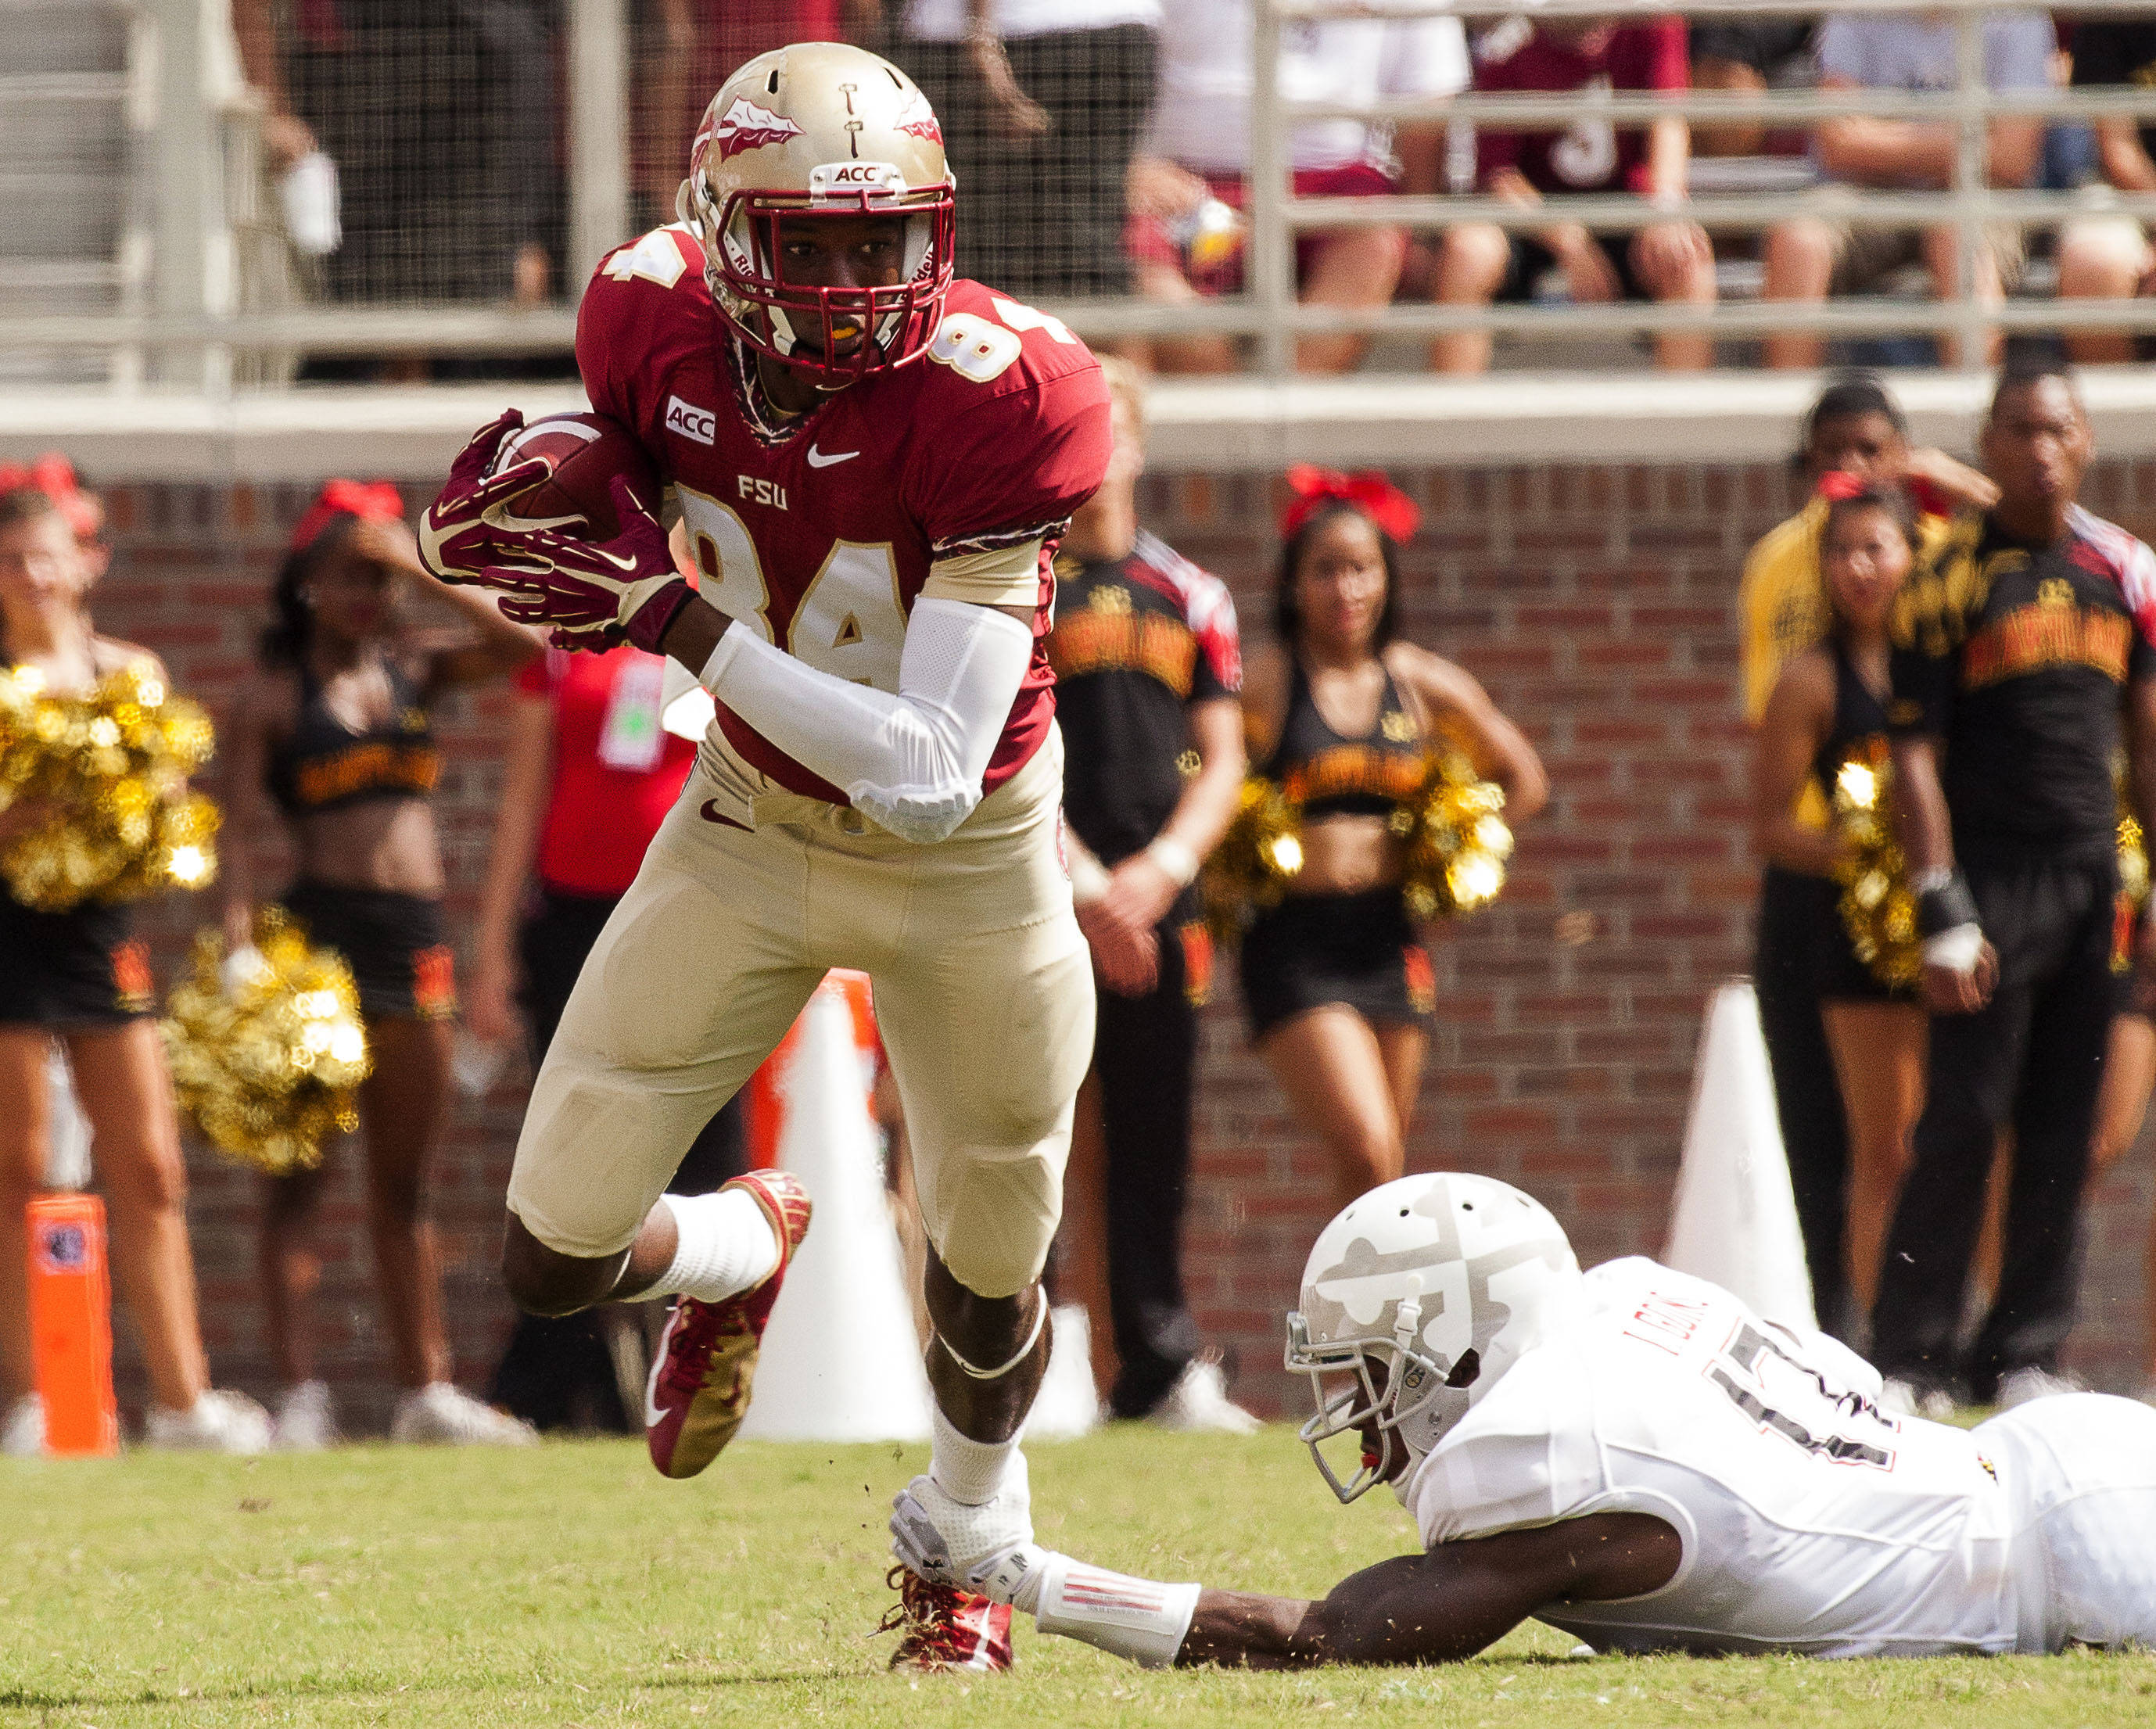 Isaiah Jones (84) runs with the ball during FSU Football's 63-0 shutout of Maryland on Saturday, October 5, 2013 in Tallahassee, Fla.